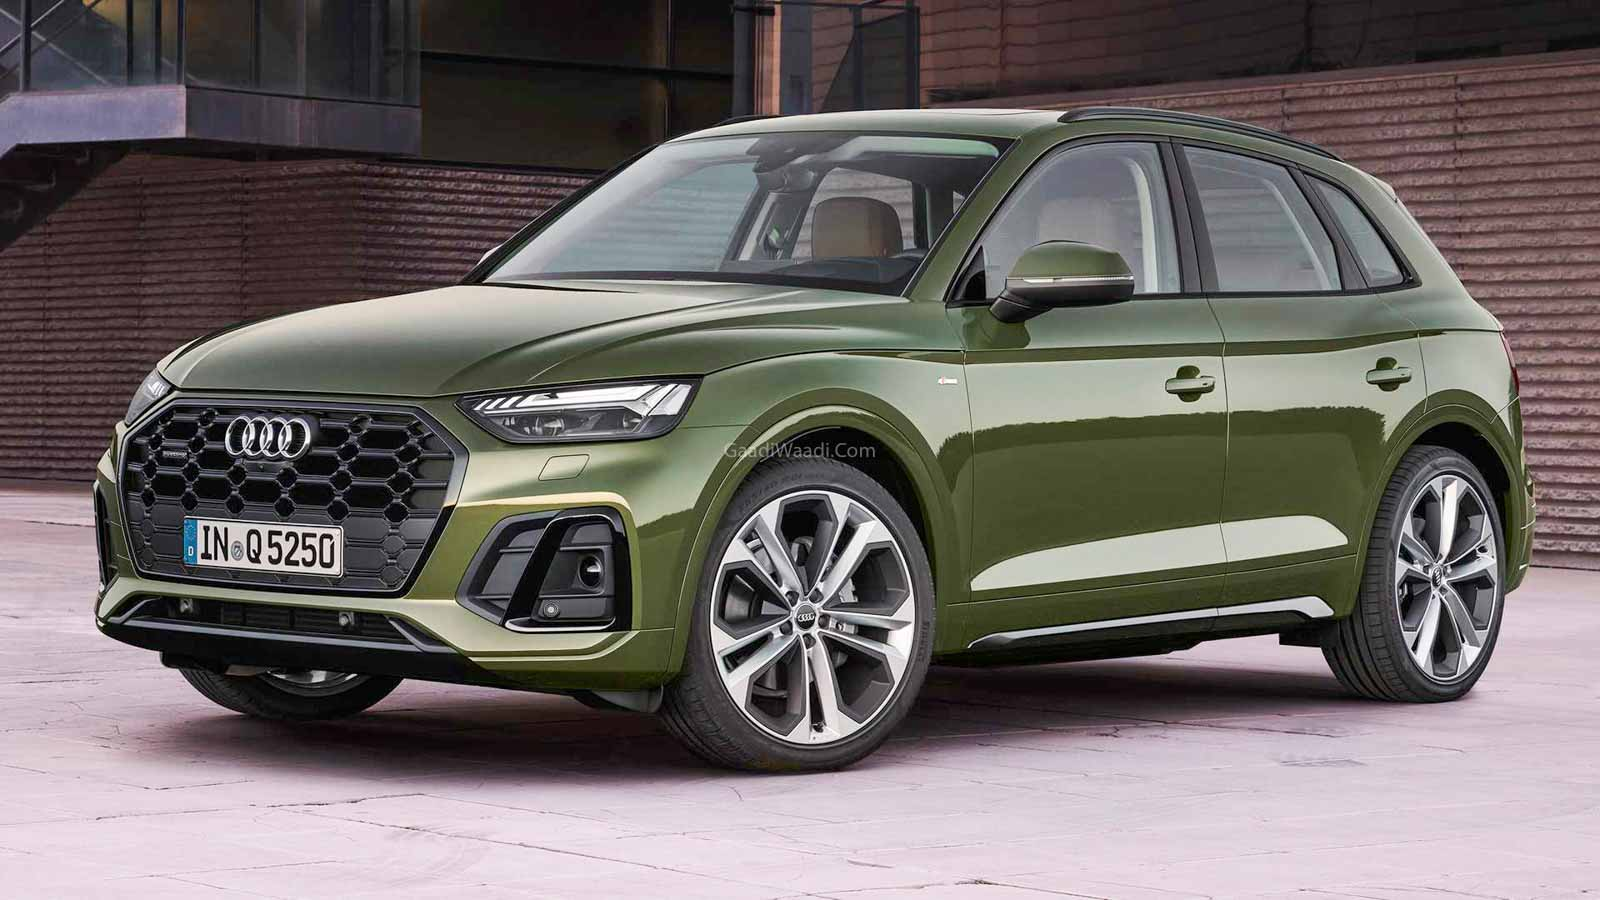 India-Bound Audi Q5 Facelift Revealed With Revised Styling